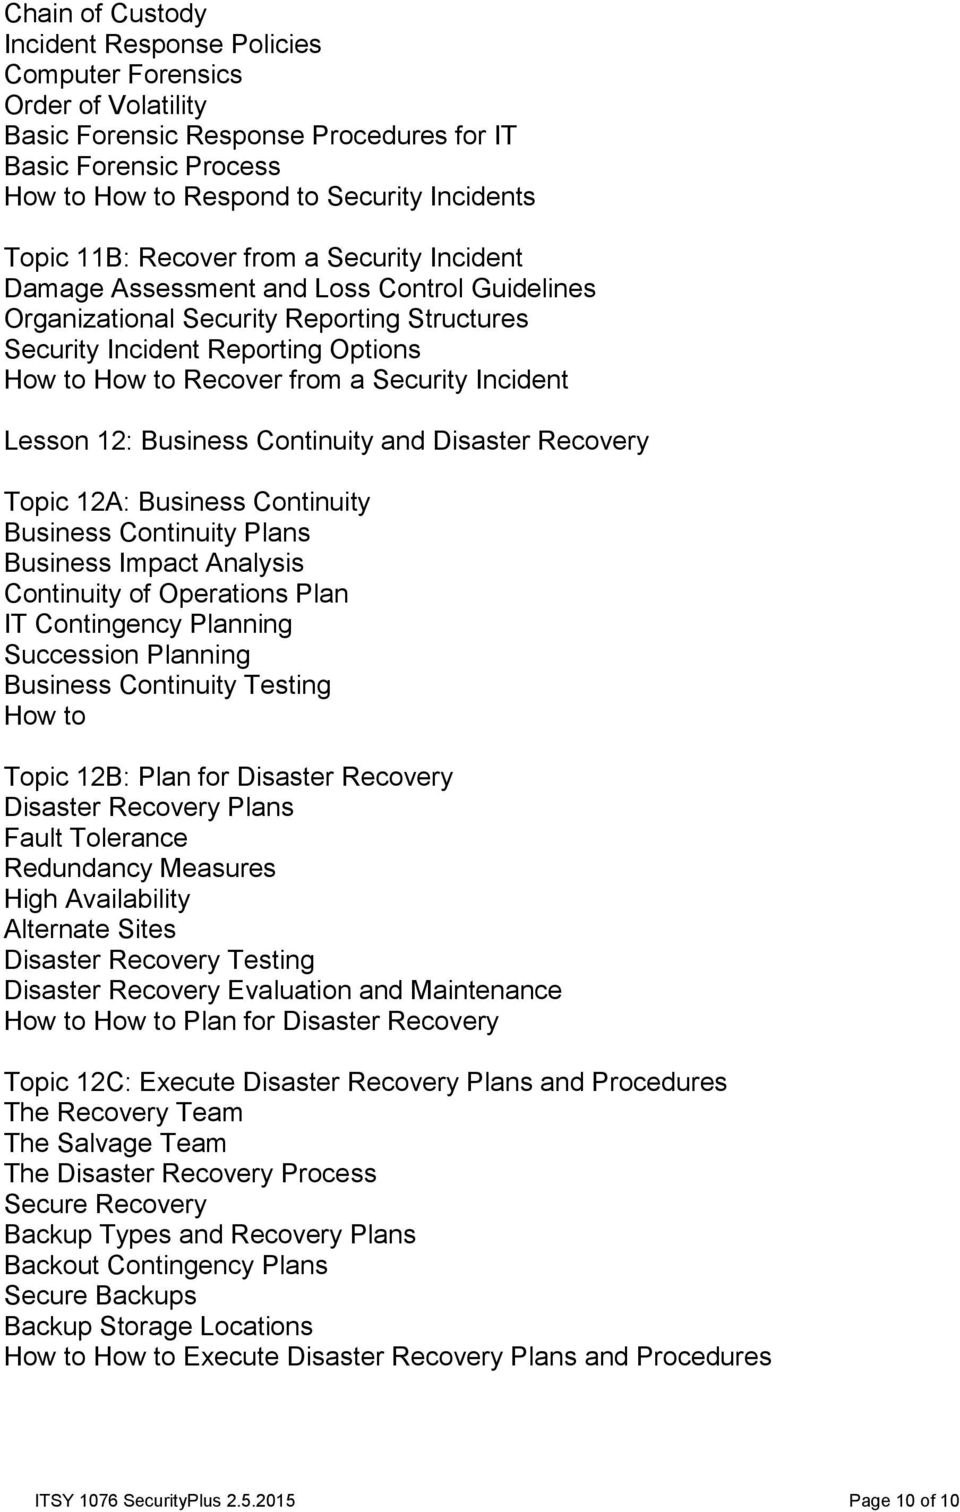 Business Continuity and Disaster Recovery Topic 12A: Business Continuity Business Continuity Plans Business Impact Analysis Continuity of Operations Plan IT Contingency Planning Succession Planning